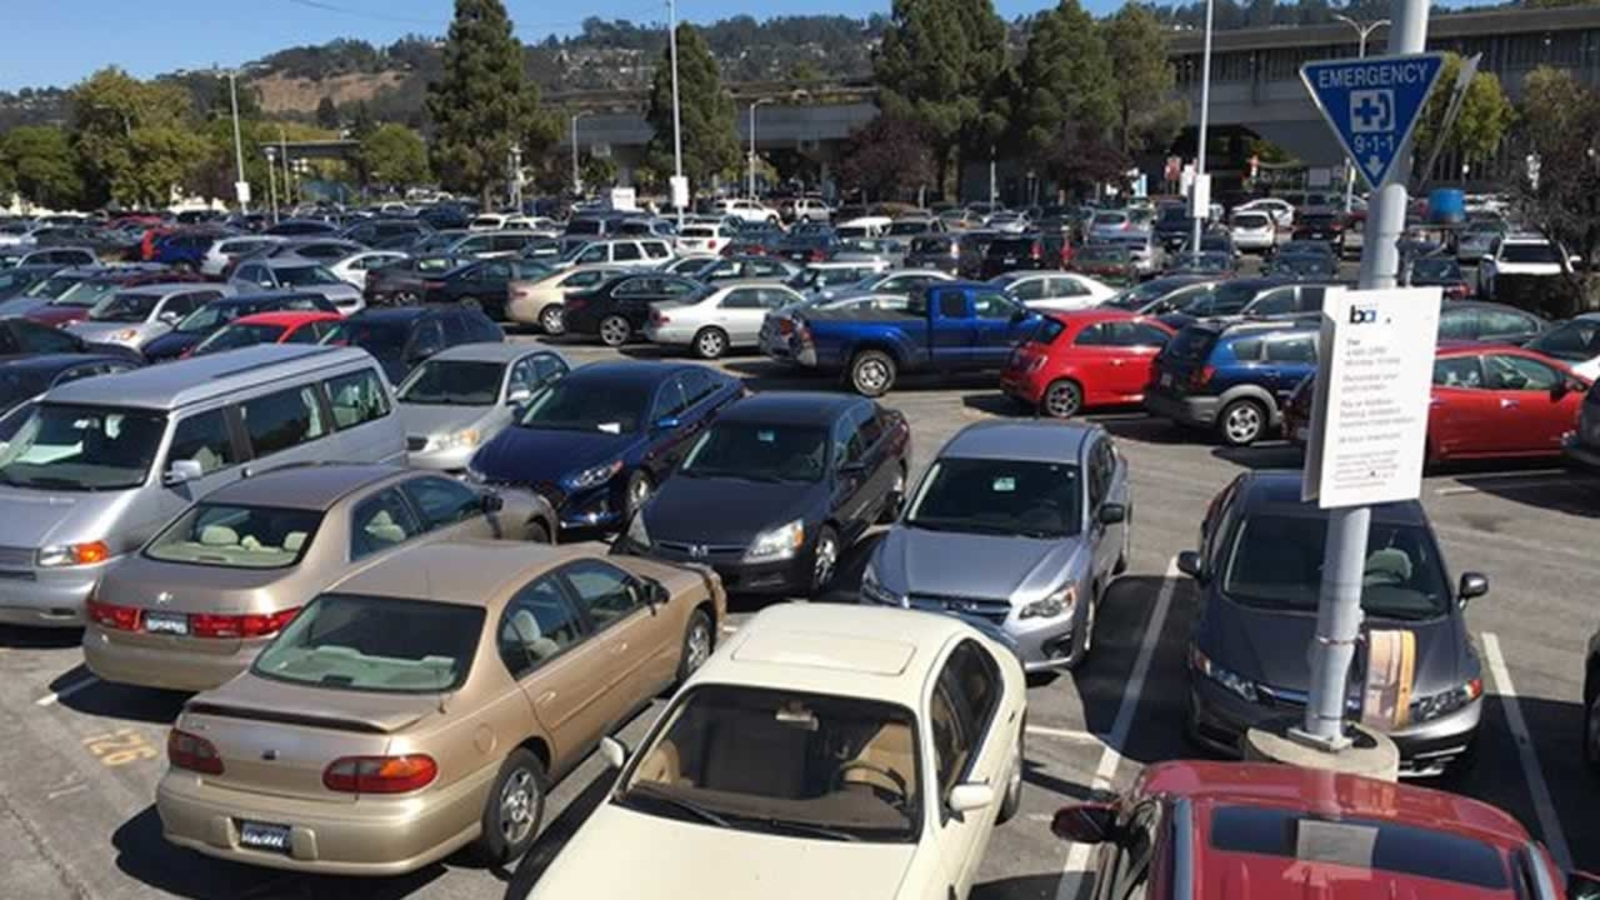 El Cerrito residents worry about loss of BART parking if Plaza Station redeveloped